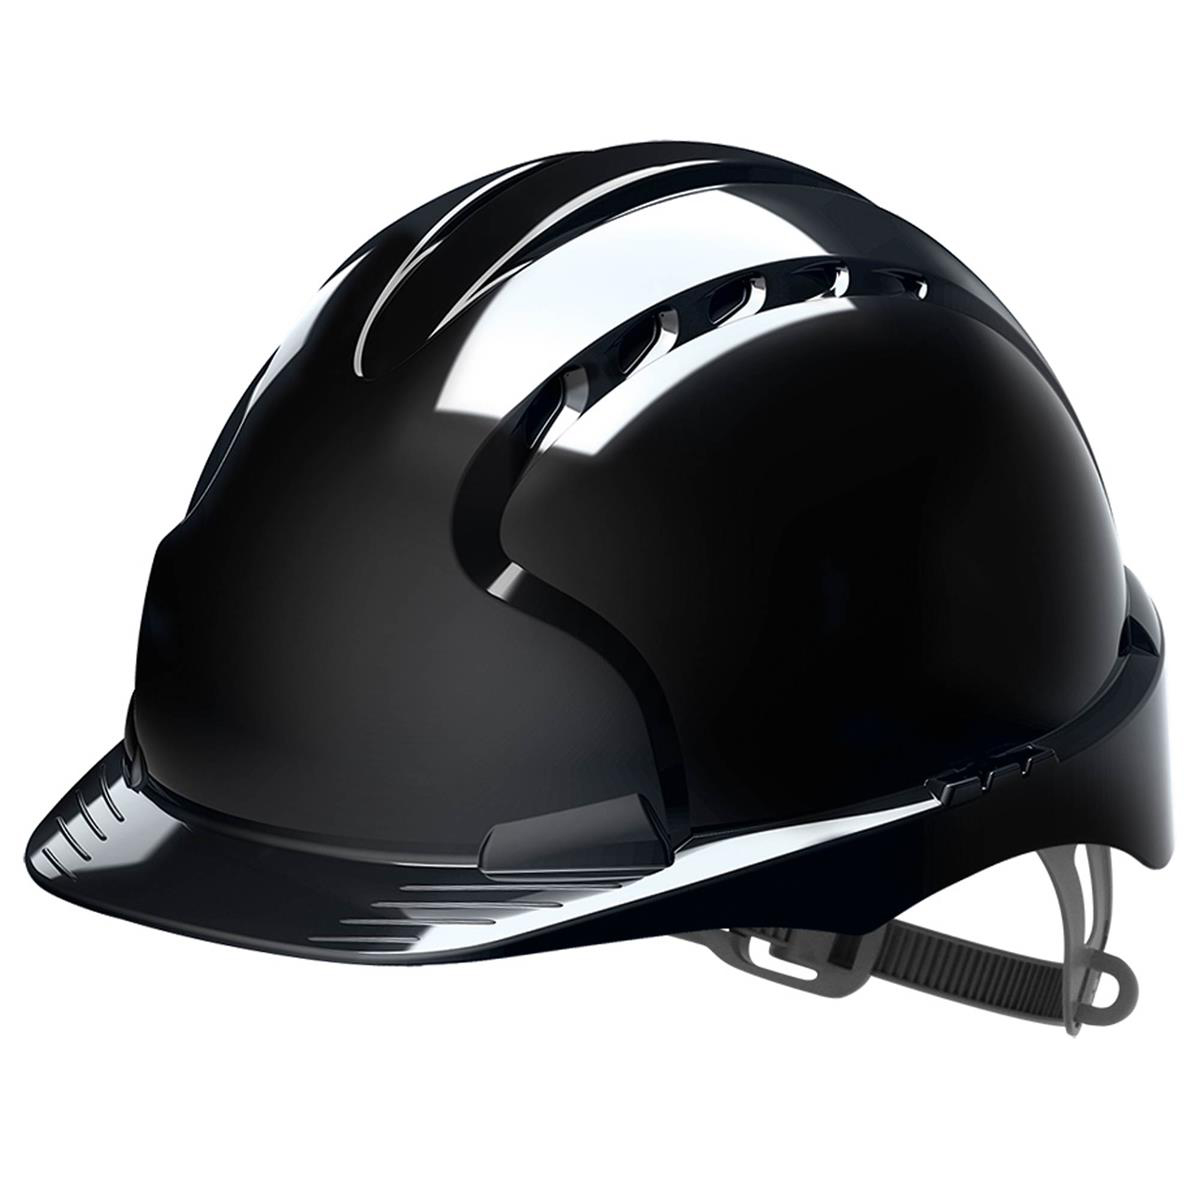 Safety helmets JSP EVO2 Safety Helmet HDPE 6-point Polyethylene Harness EN397 Standard Black Ref AJF030-001-1G1